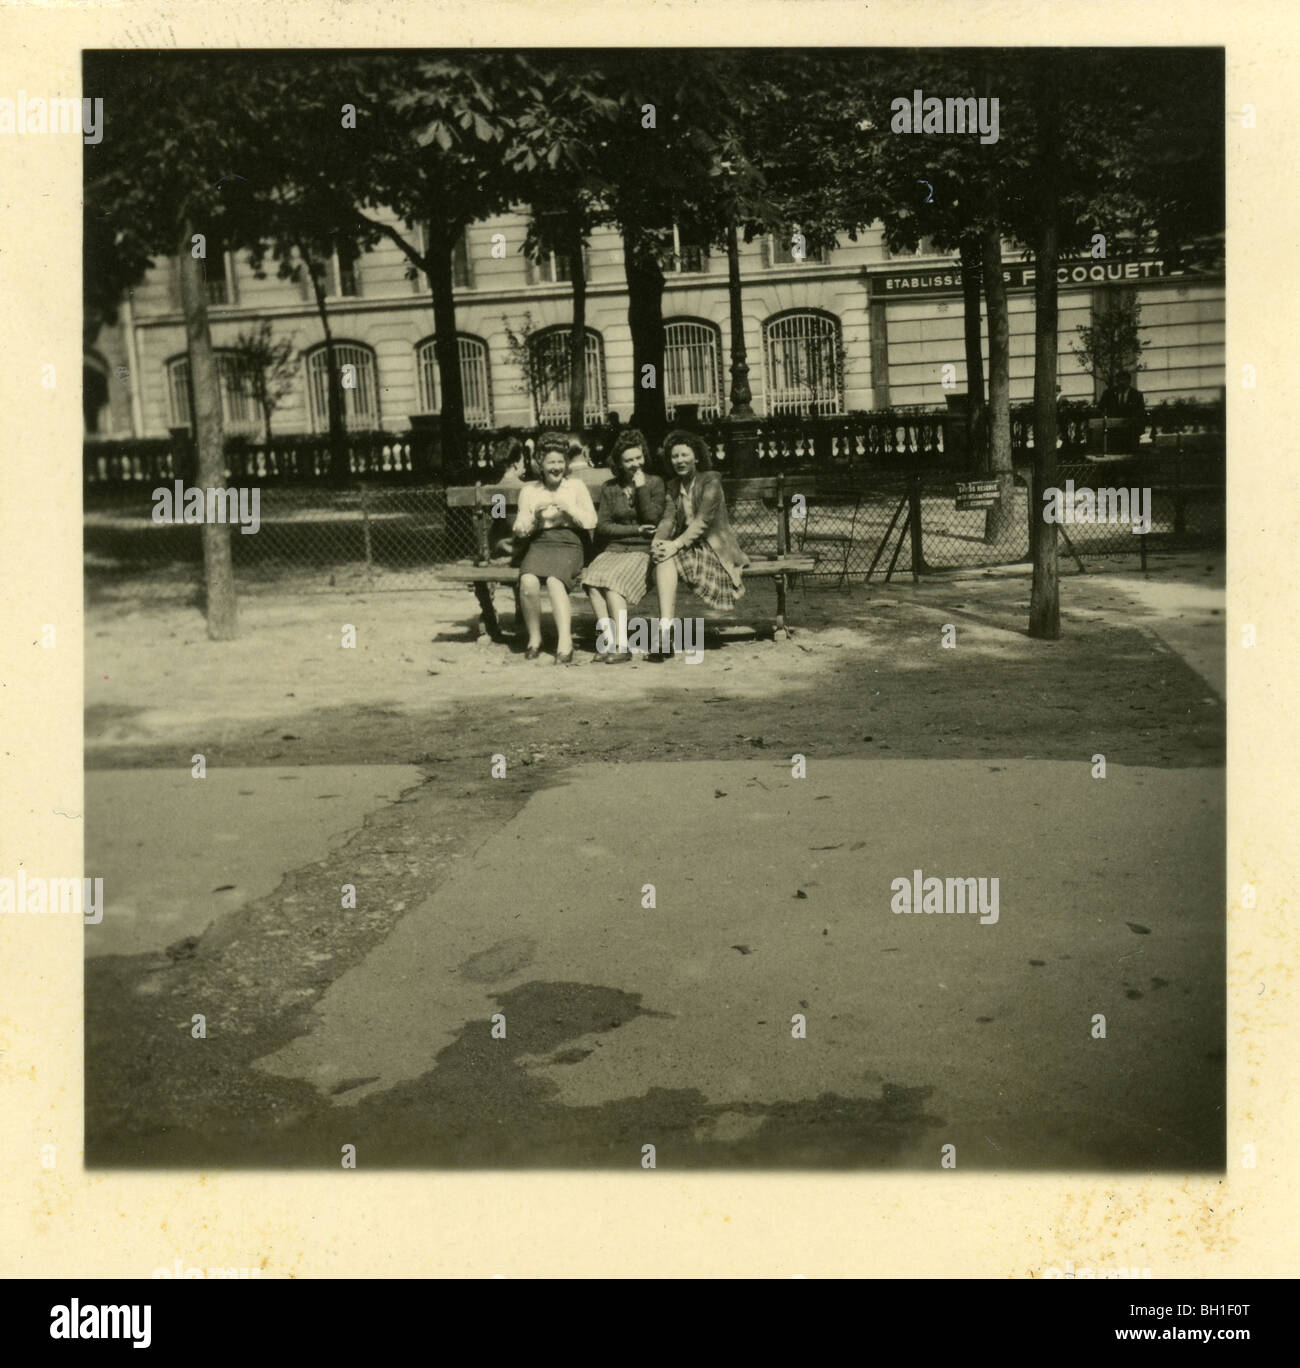 Trhee women relaxing on a park bench in liberated Paris, France at the conclusion of WWII. - Stock Image